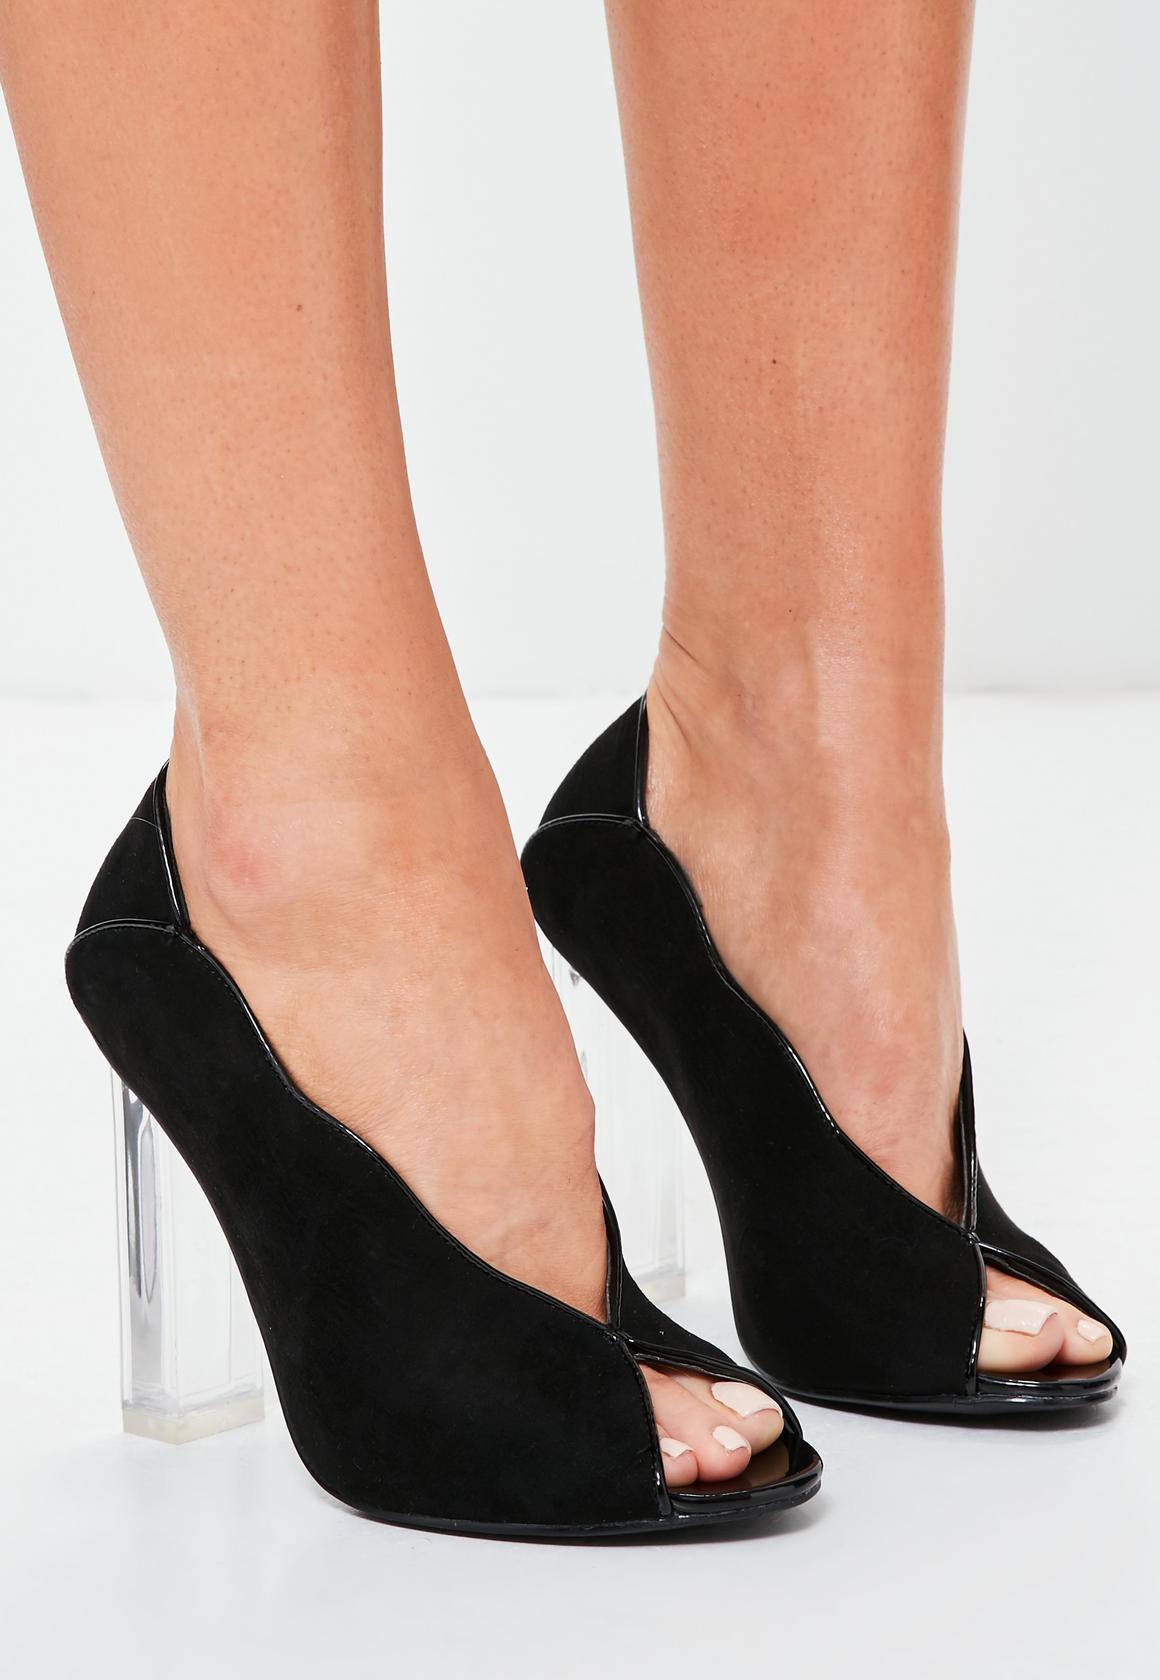 Peep toe heels: Looks Classy in Any Party